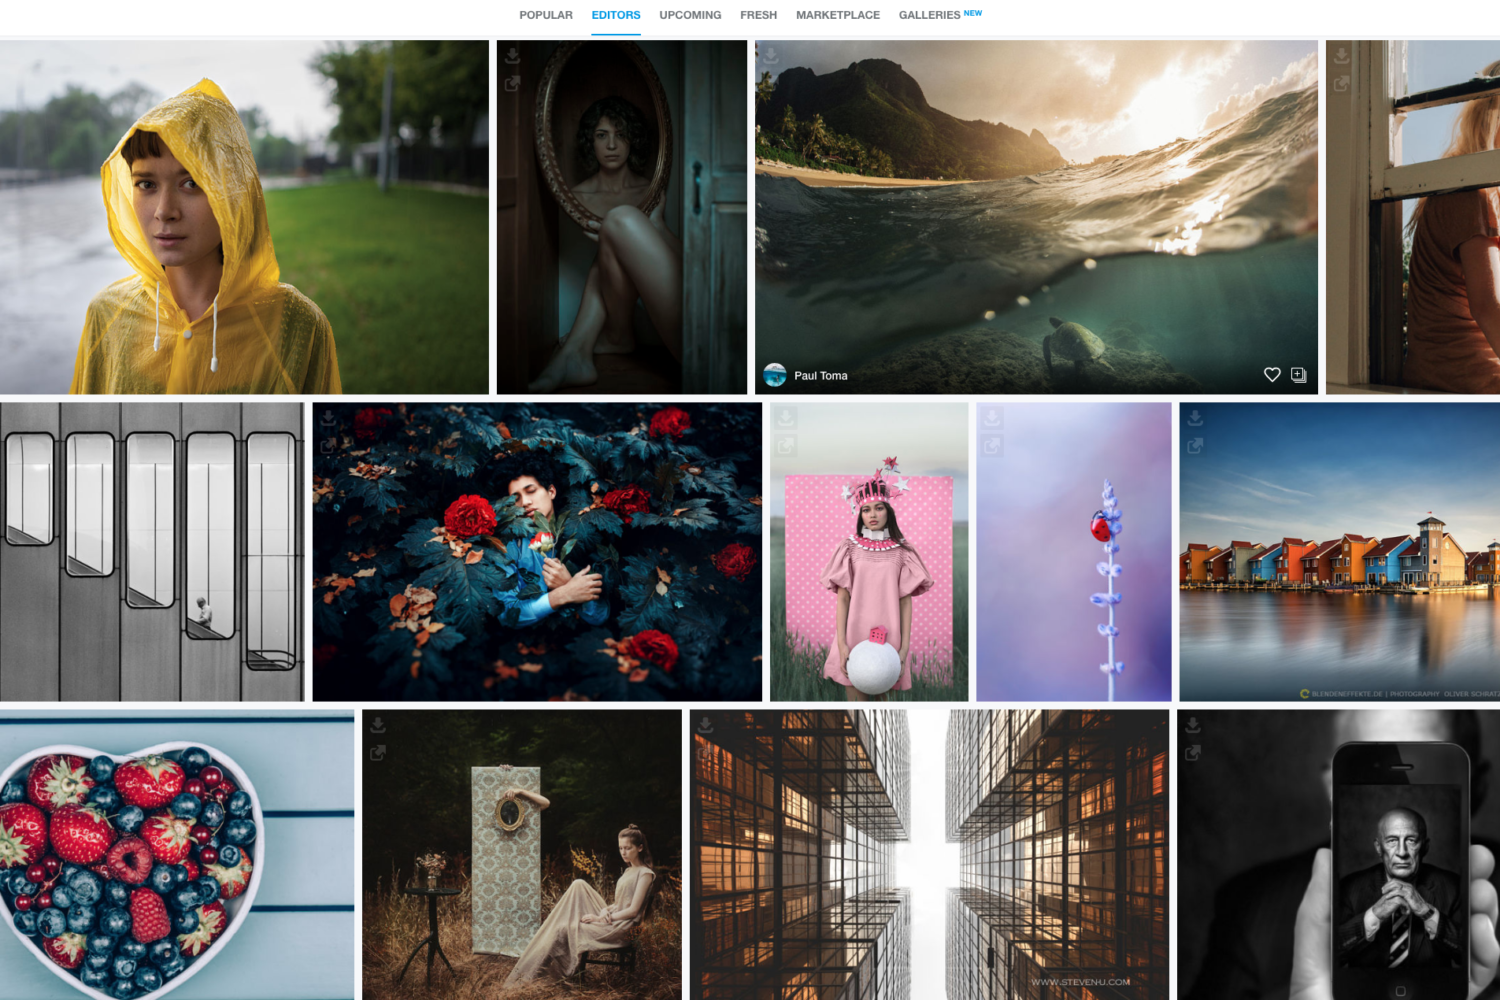 Editor's Choice: An Inside Look at Curation & Content